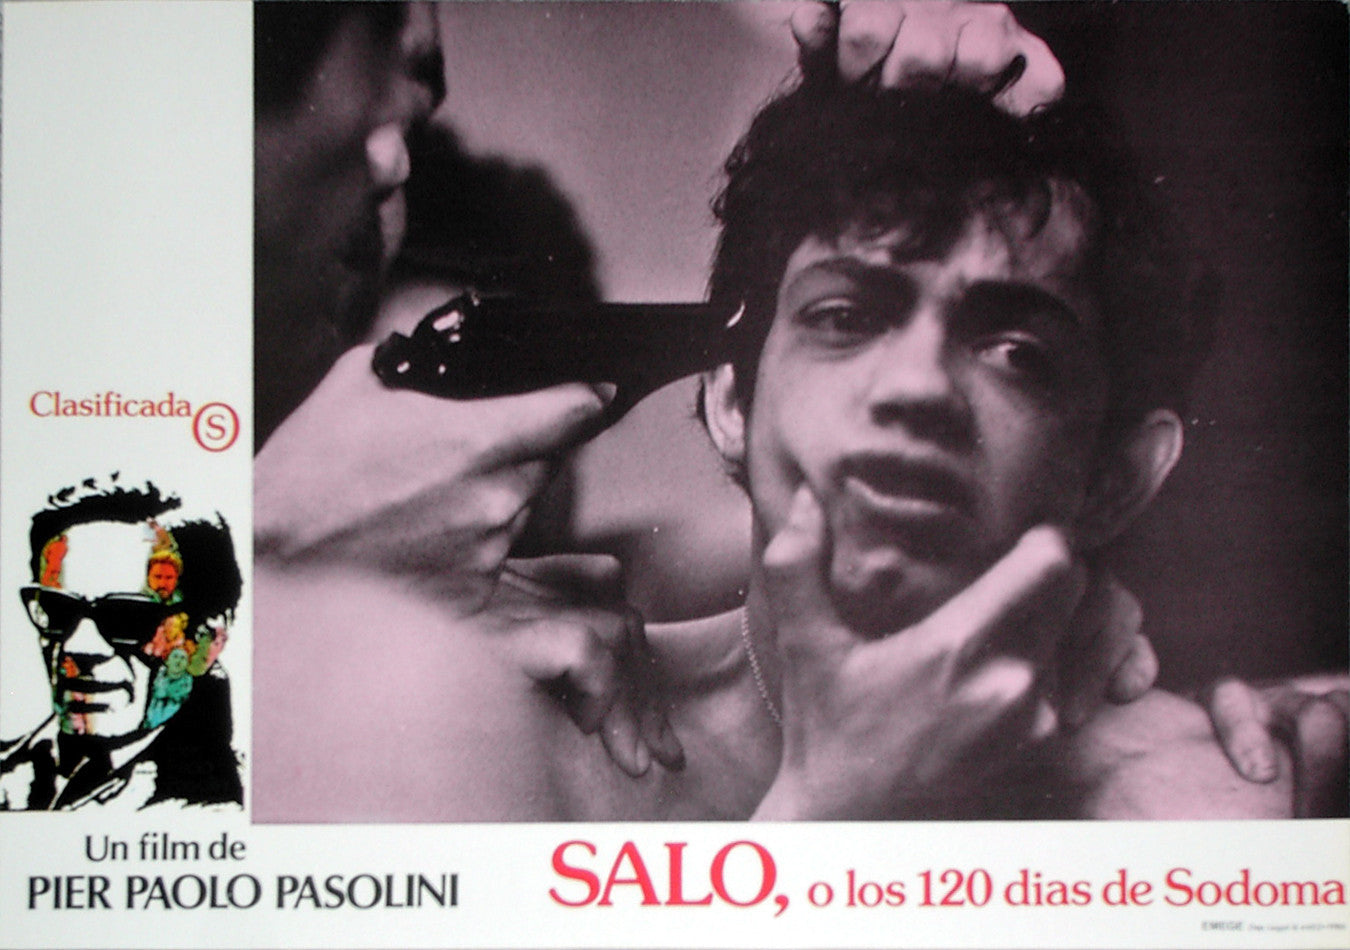 SALO: 120 DAYS OF SODOM - Spanish lobby card v12